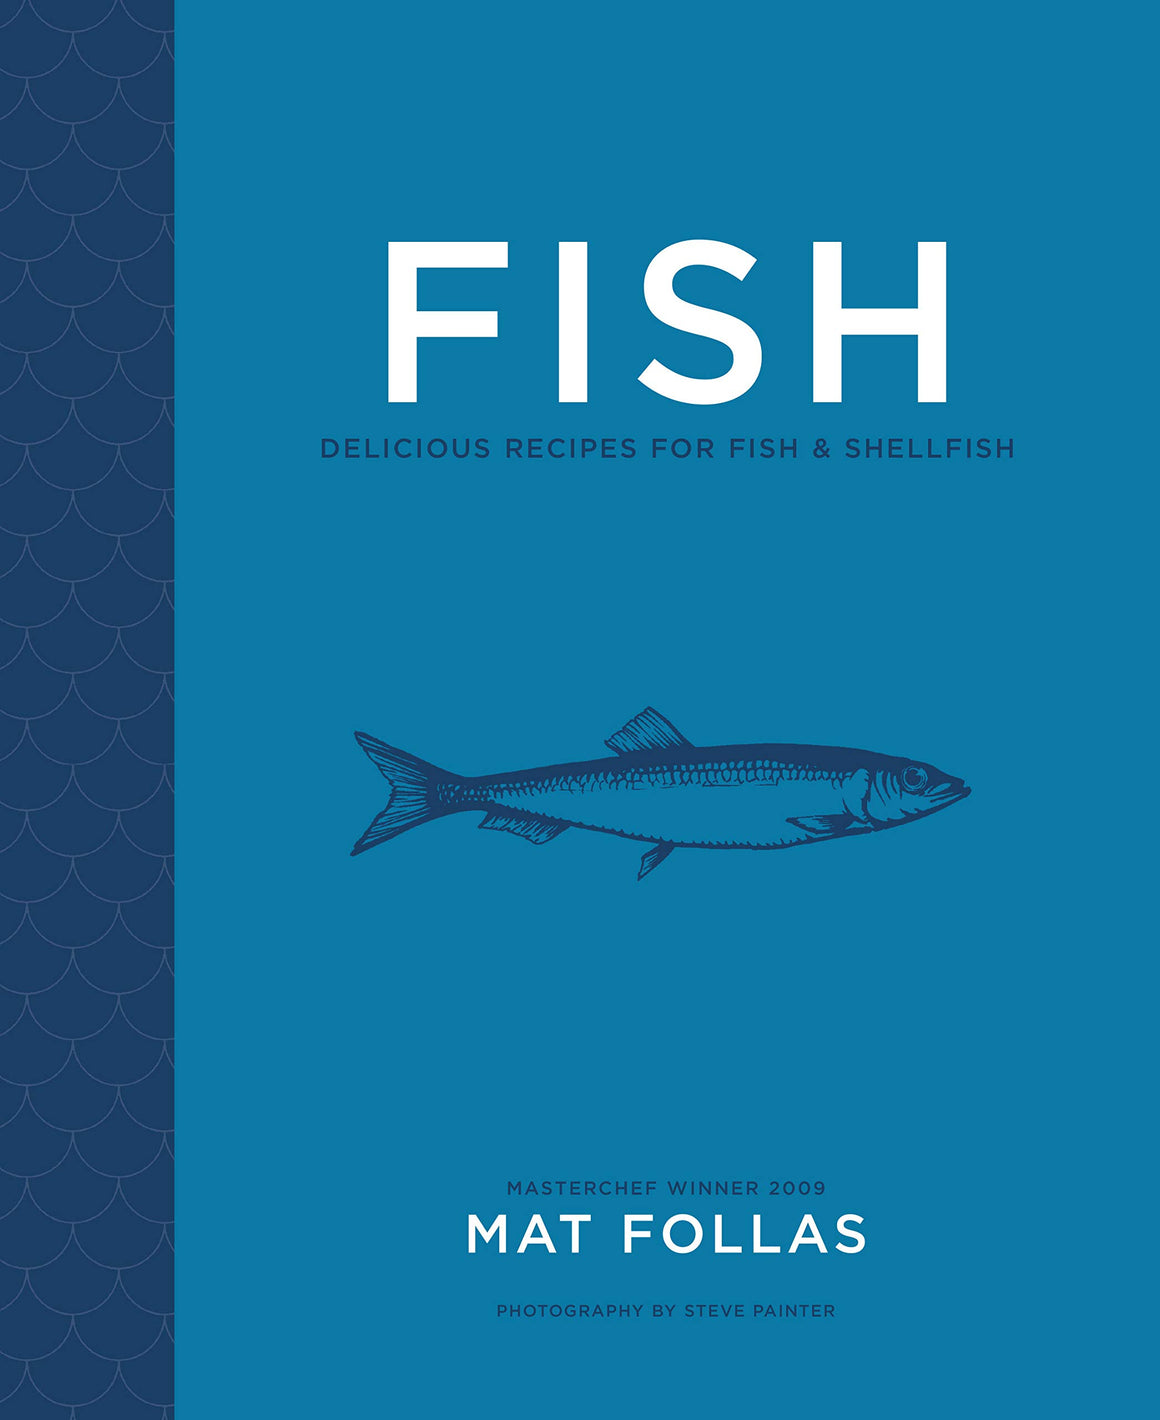 Fish: Delicious Recipes for Fish & Shellfish by Matt Follas